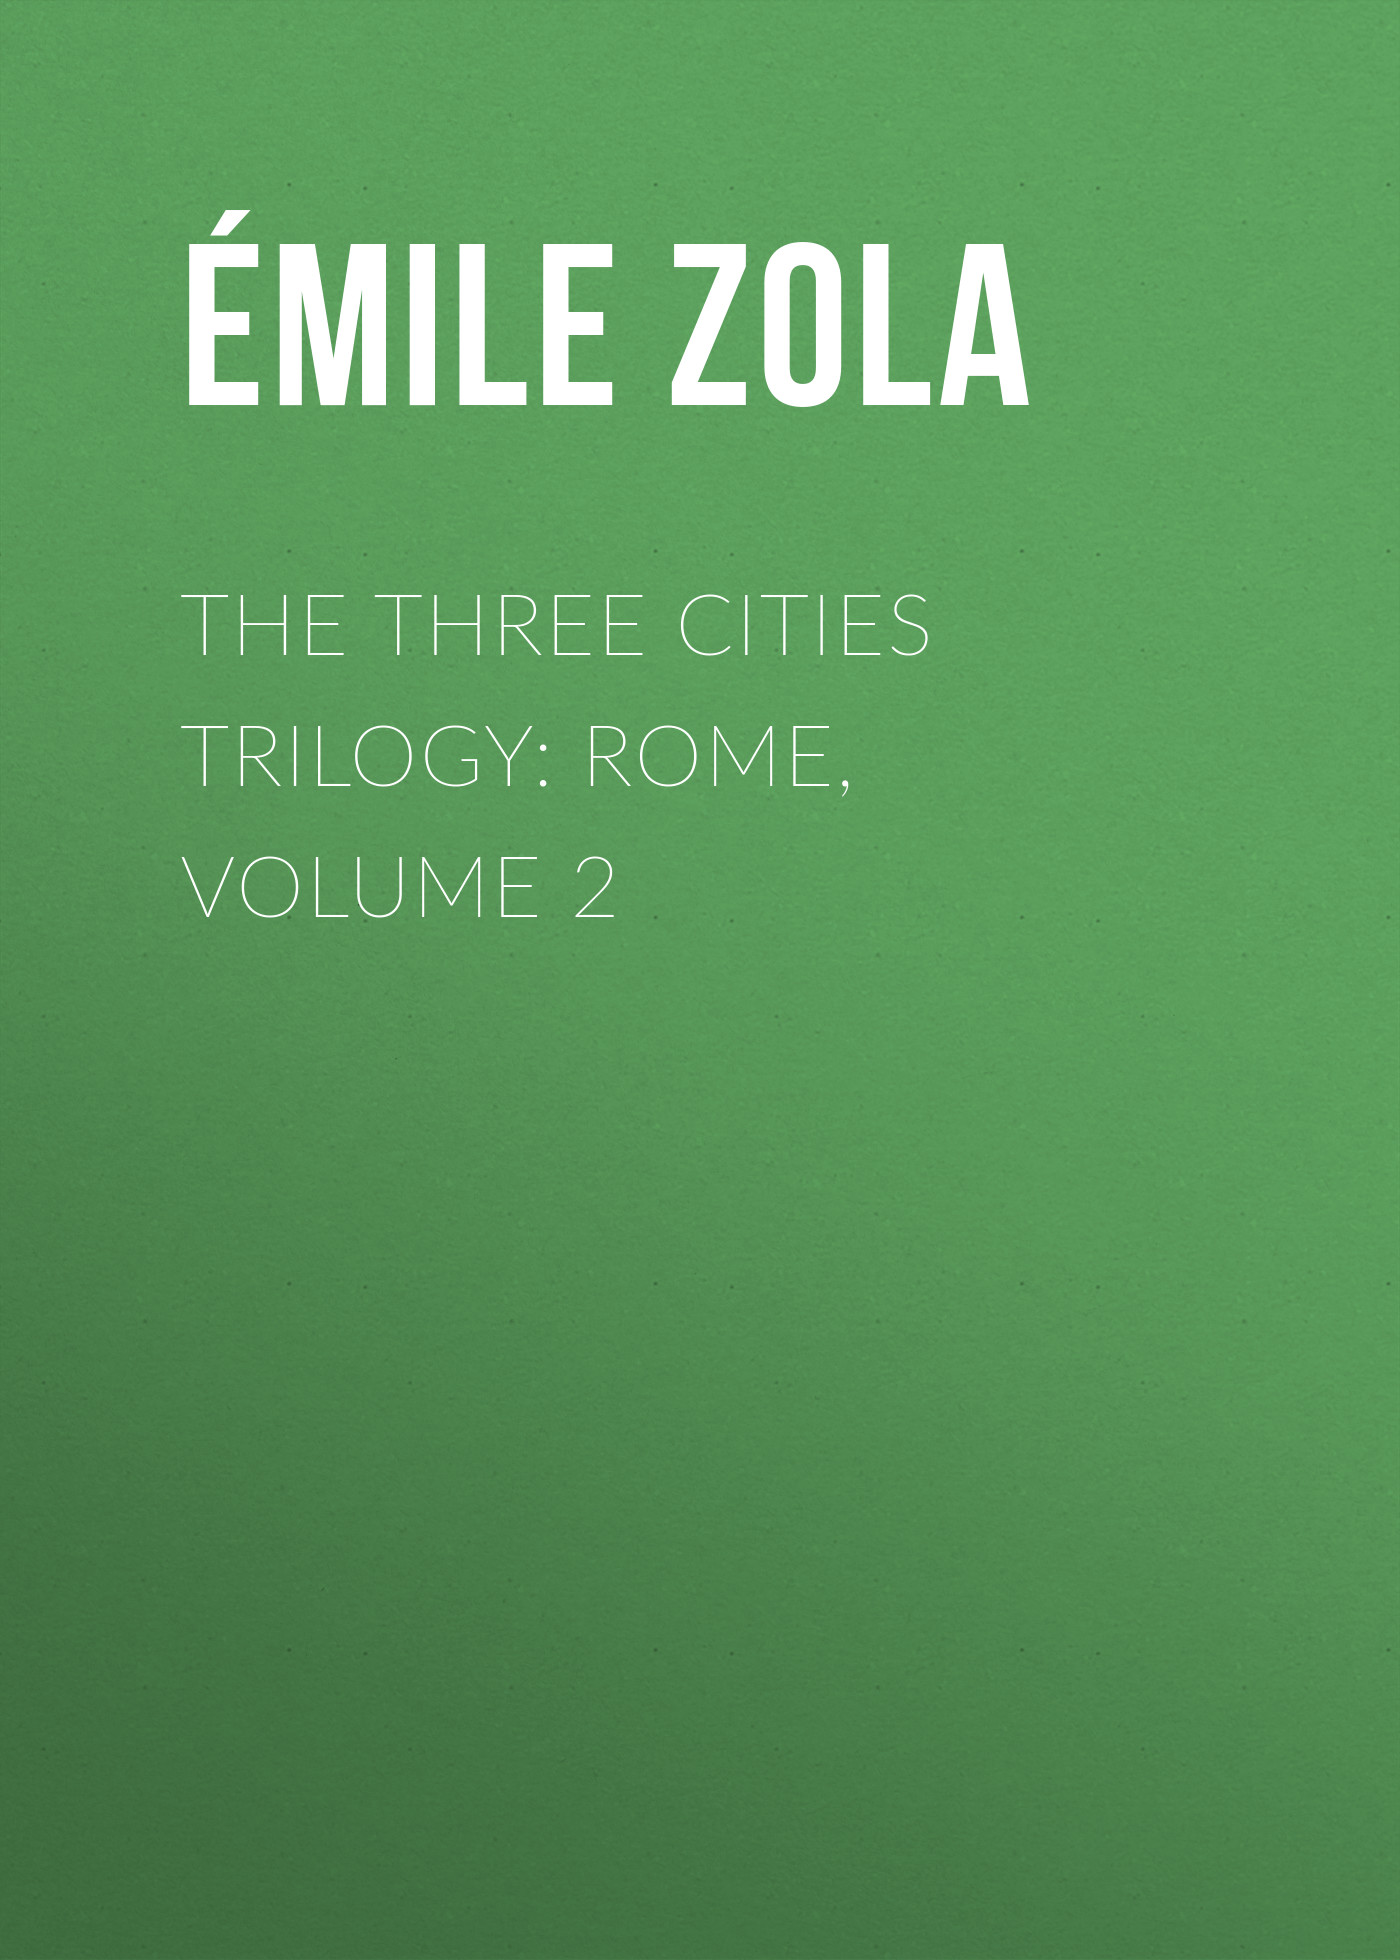 the three cities trilogy rome volume 2